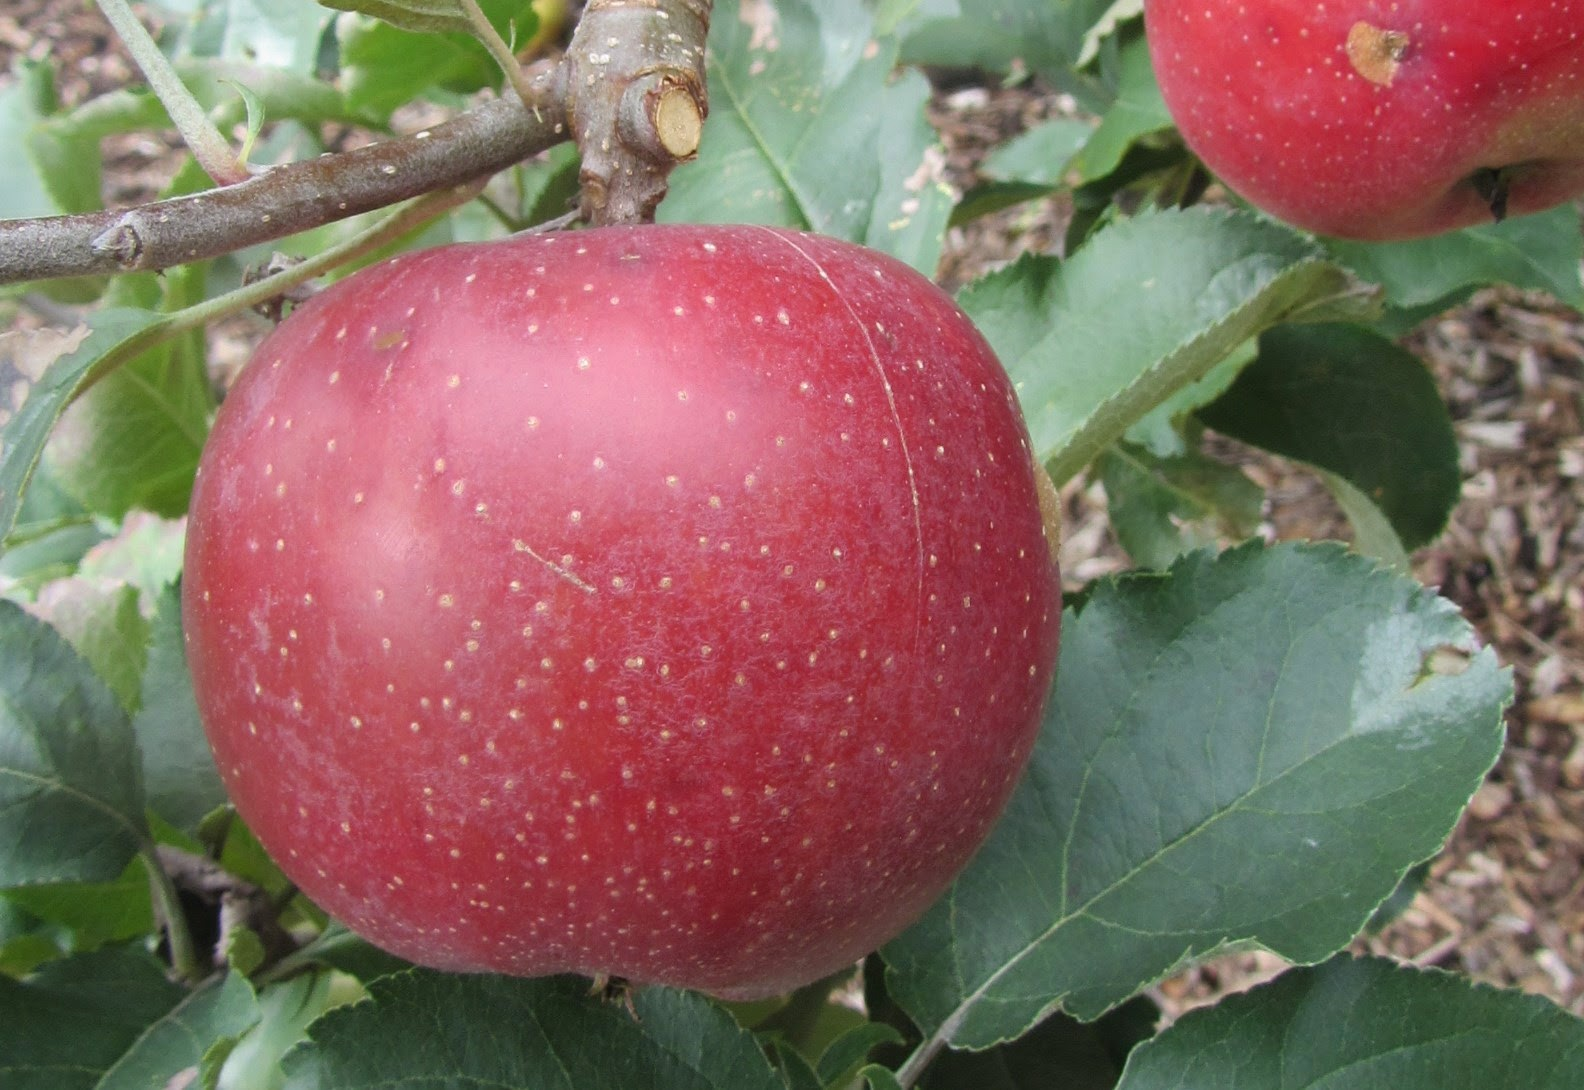 an apple orchard in usda hardiness zone 6 has a wide array of plant families that bloom throughout the year providing food for the bees and increasing